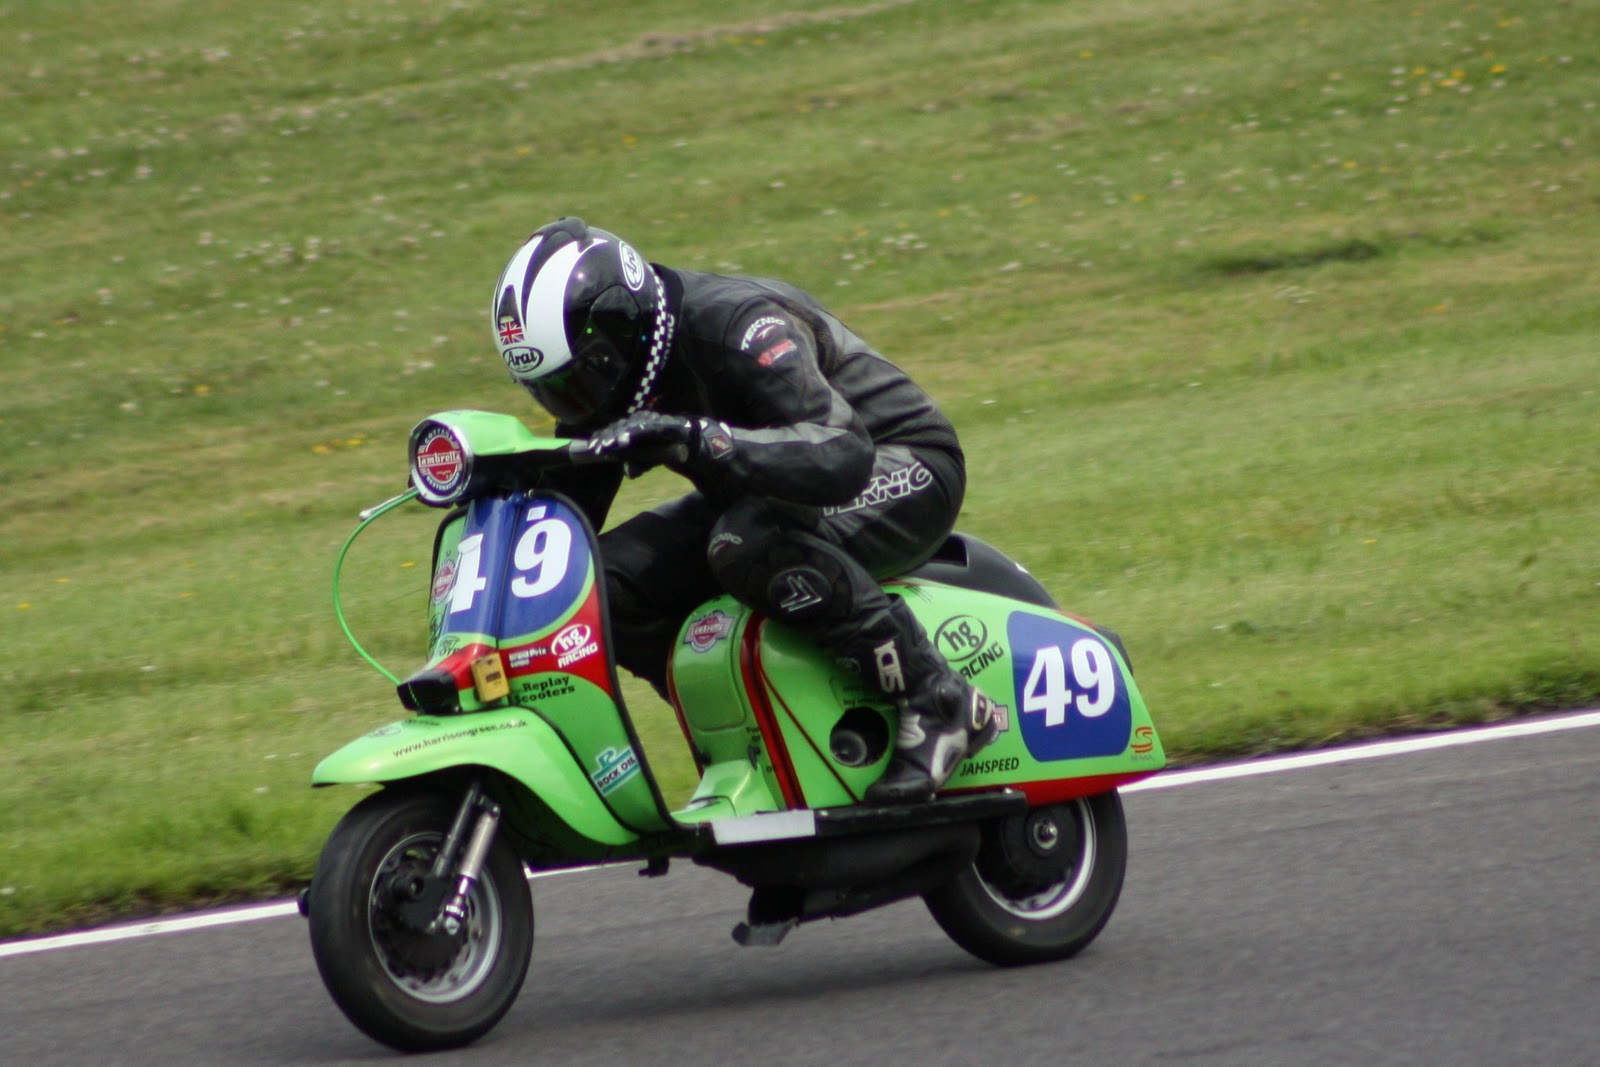 Paul Green Hg Racing Lambretta Group 4 Cadwell Park